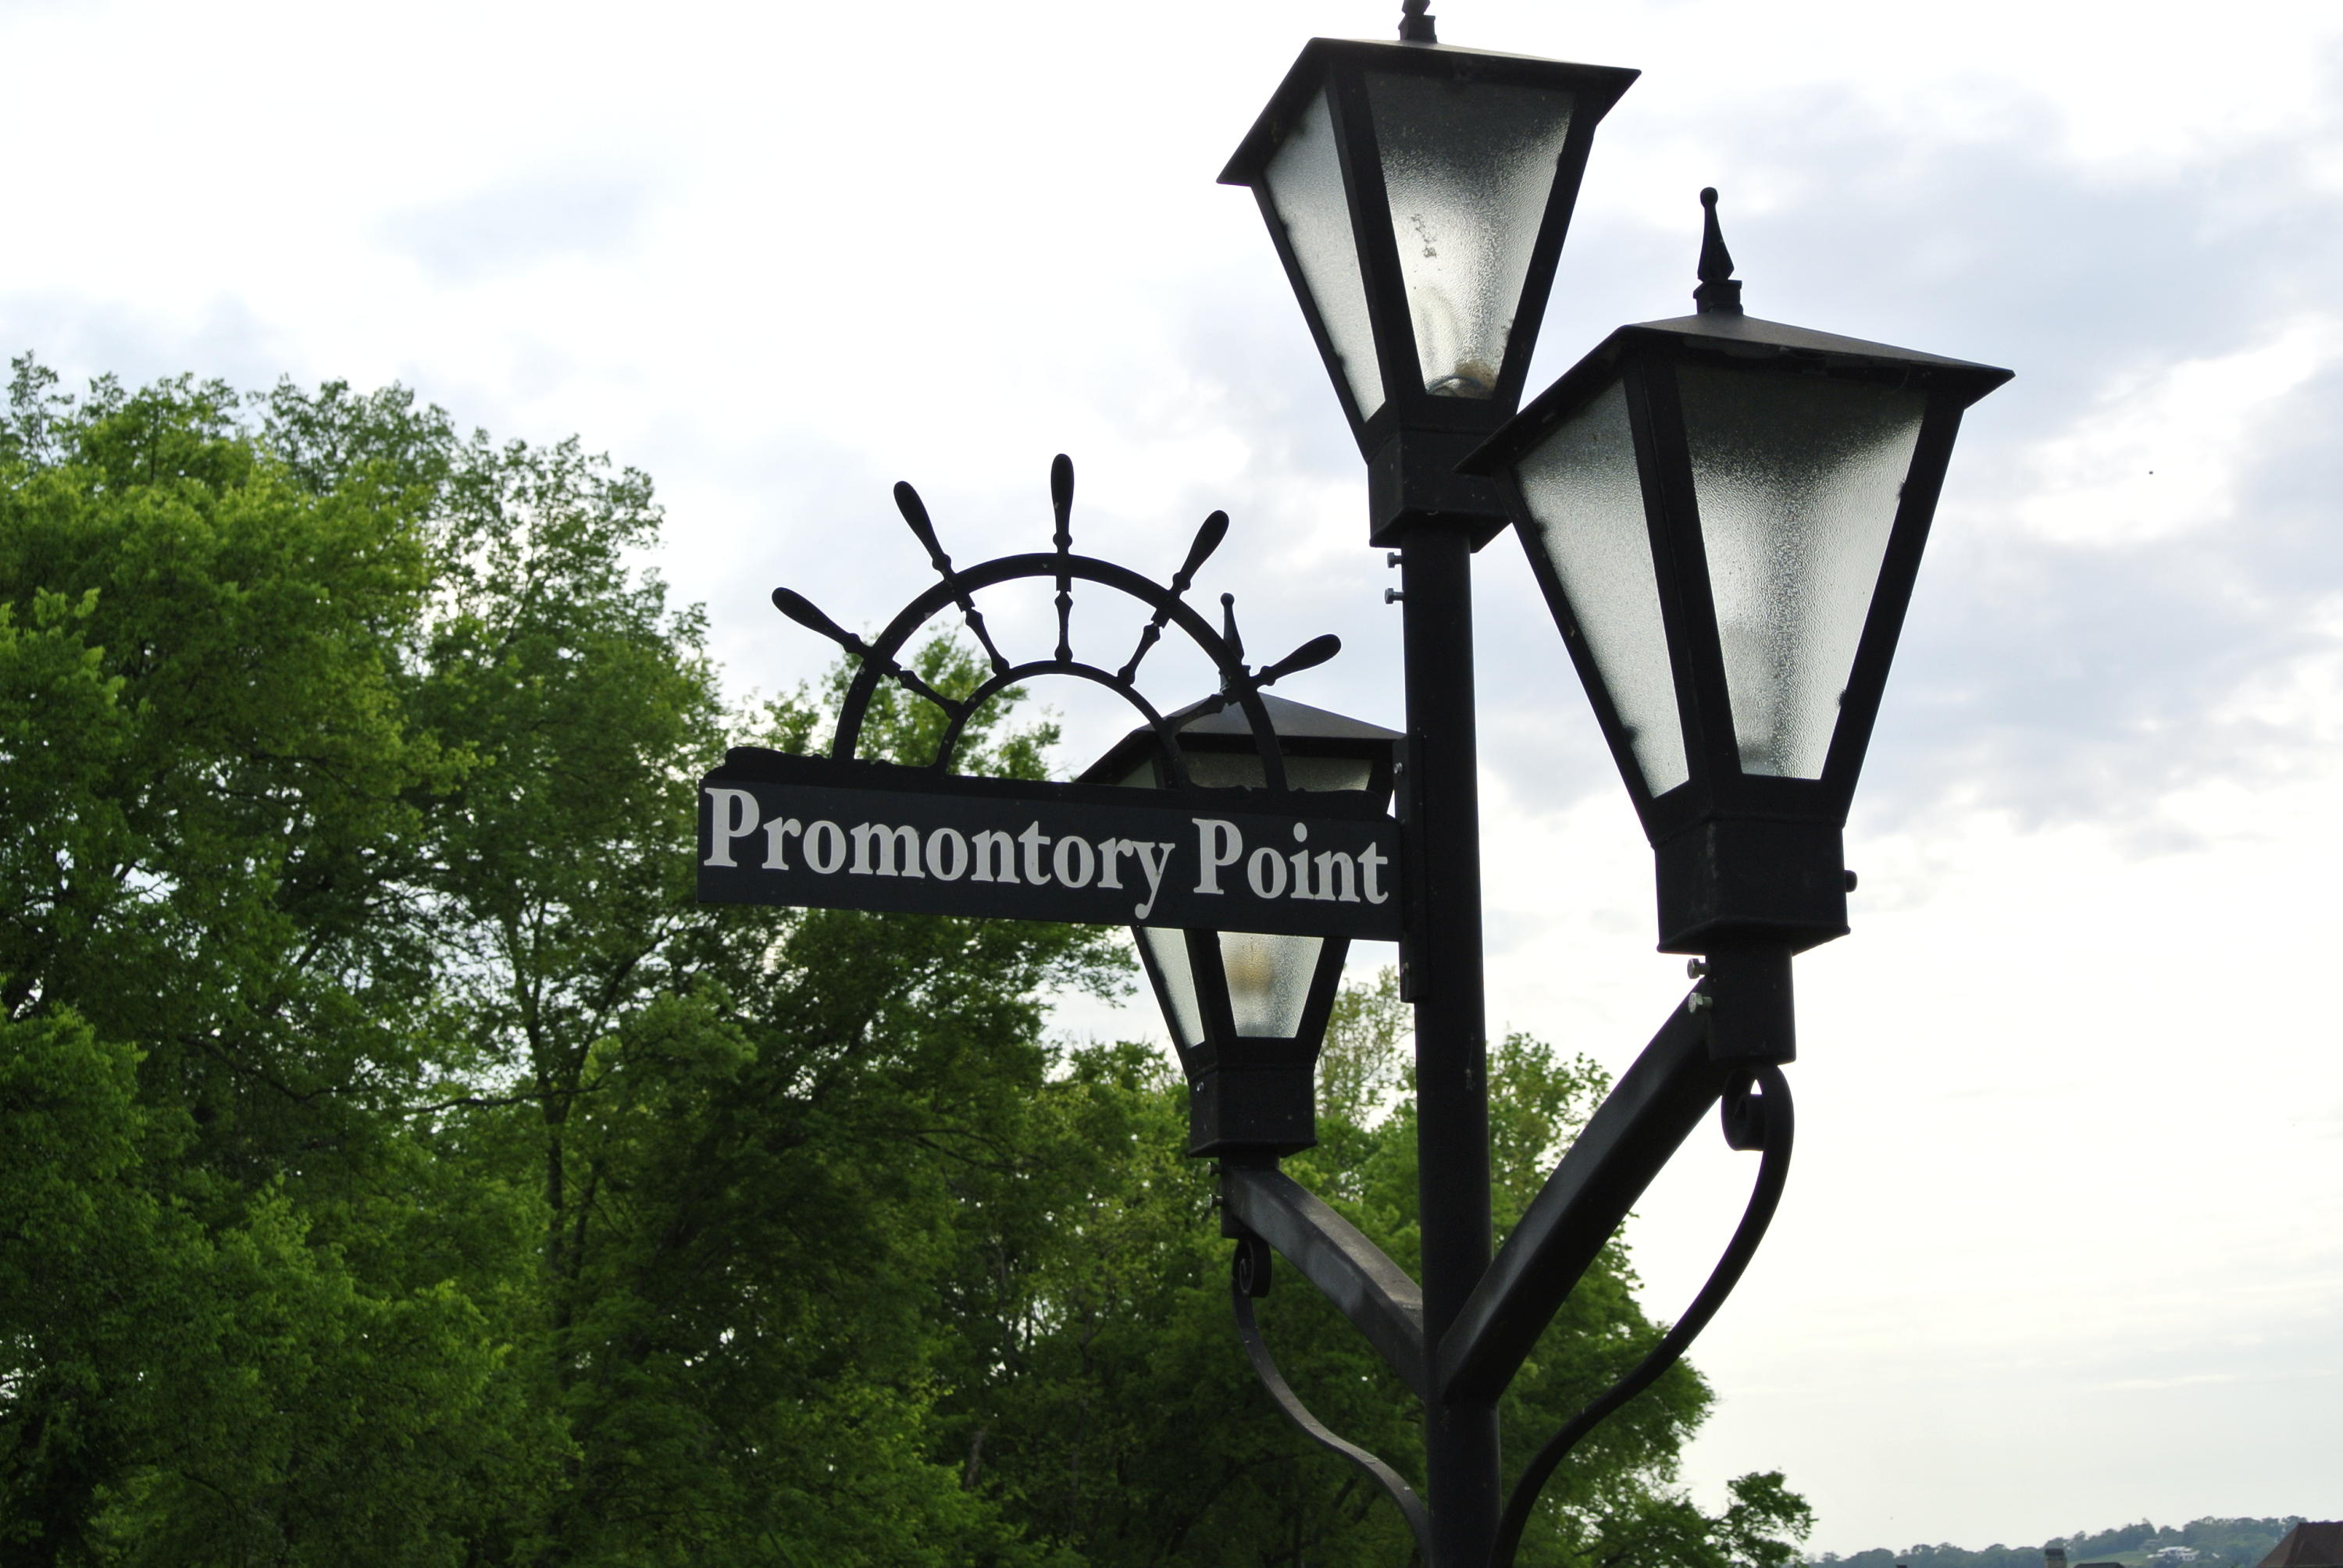 Lot 48 Promontory Point: